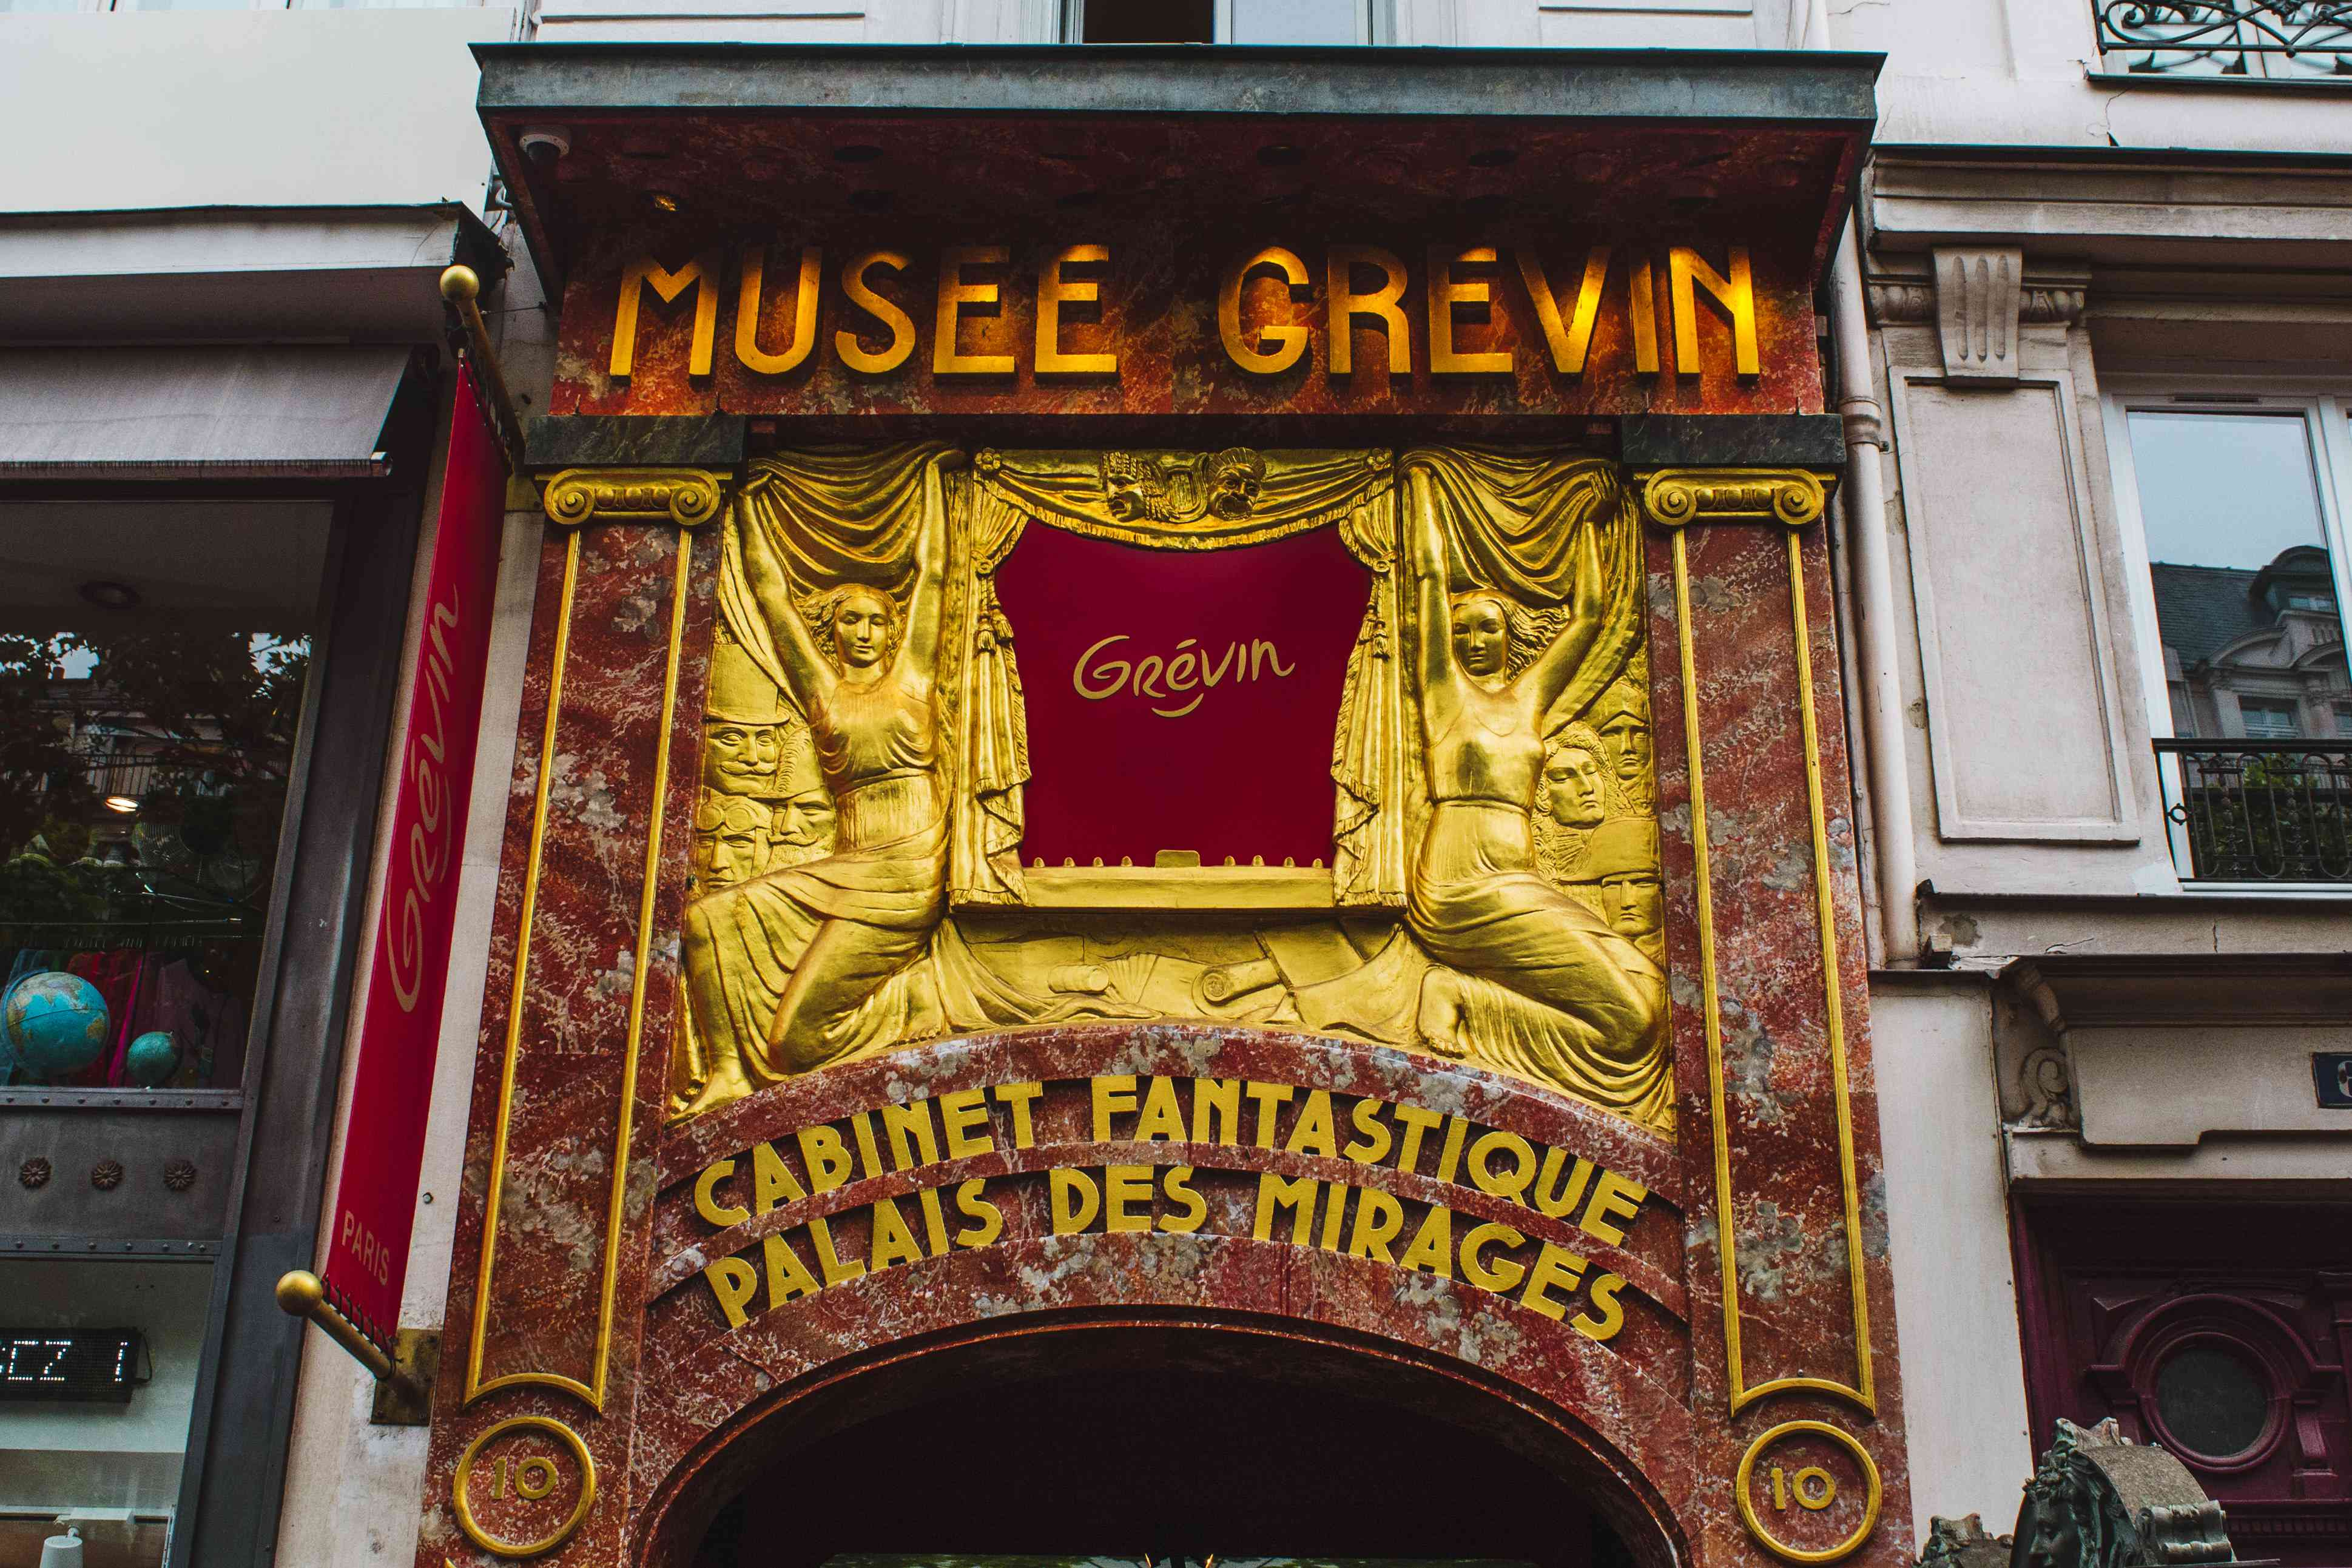 Entrance to Musee Grevin